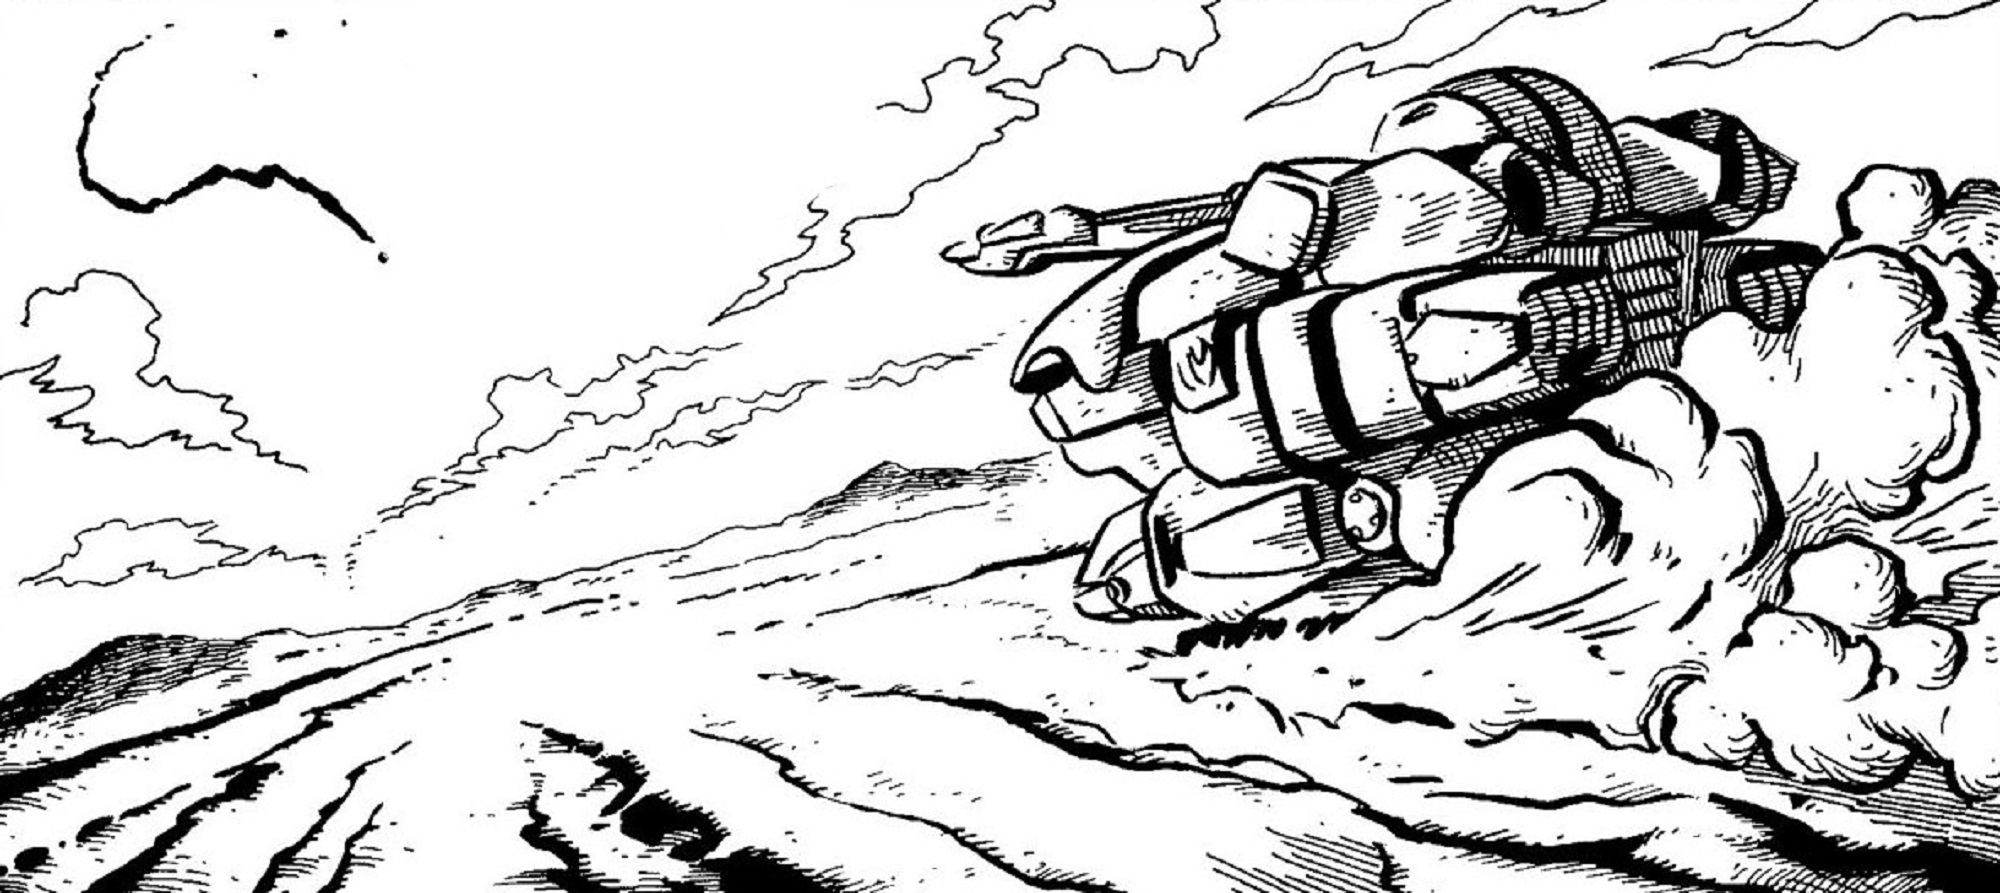 February 2017 mecha journal page 2 vht 1 spartas during the invasion of tirol malvernweather Image collections